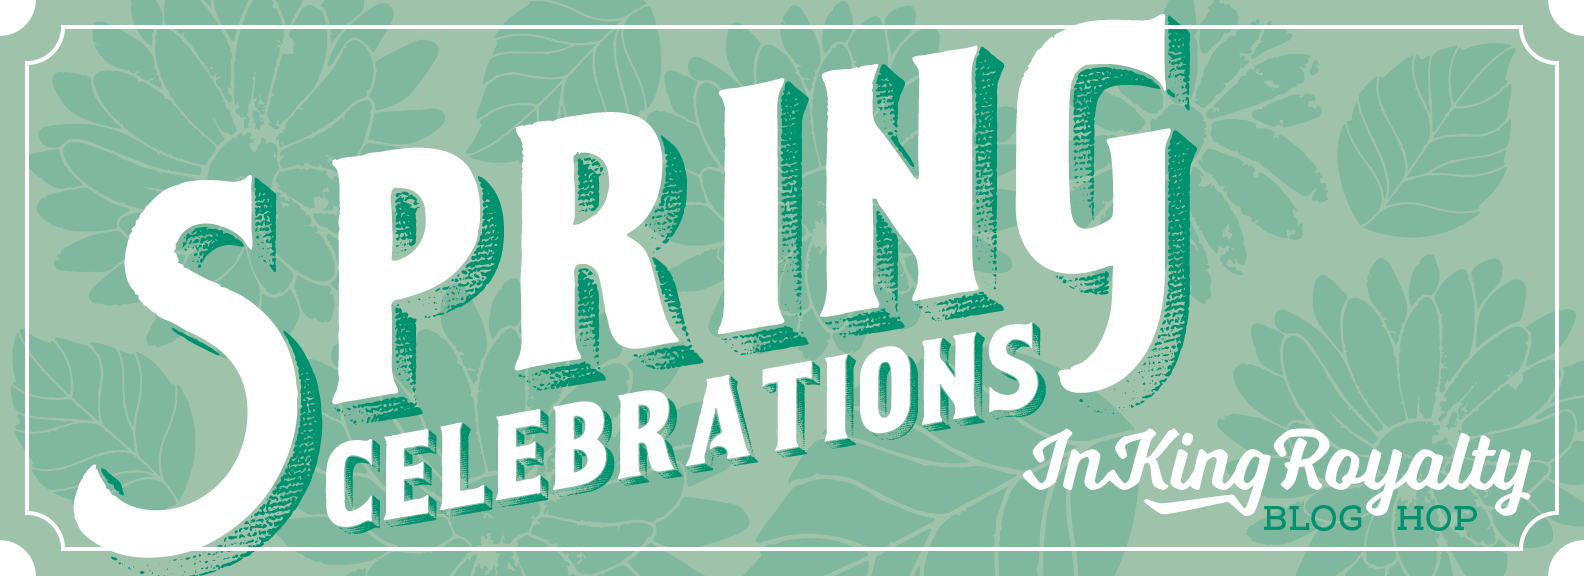 Join up for a Spring Celebration Blog Hop! Stampin' Up! #stampcandy